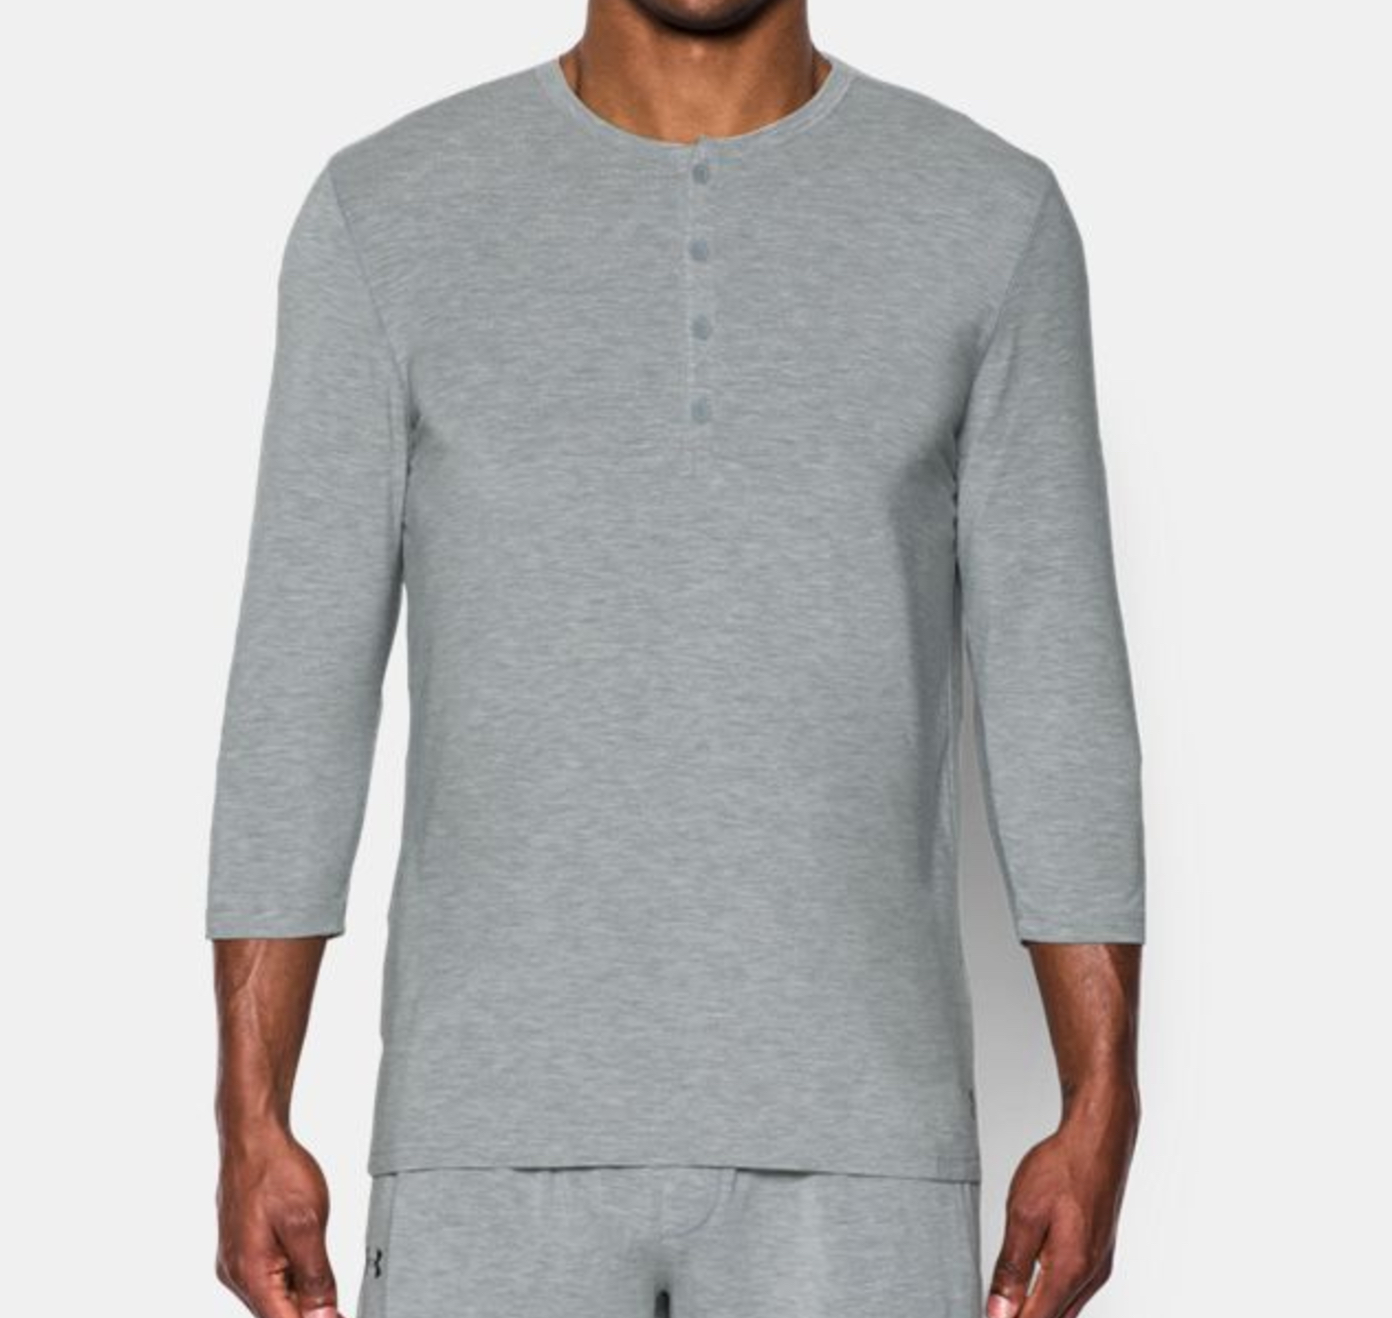 under armour athlete recovery sleepwear 2